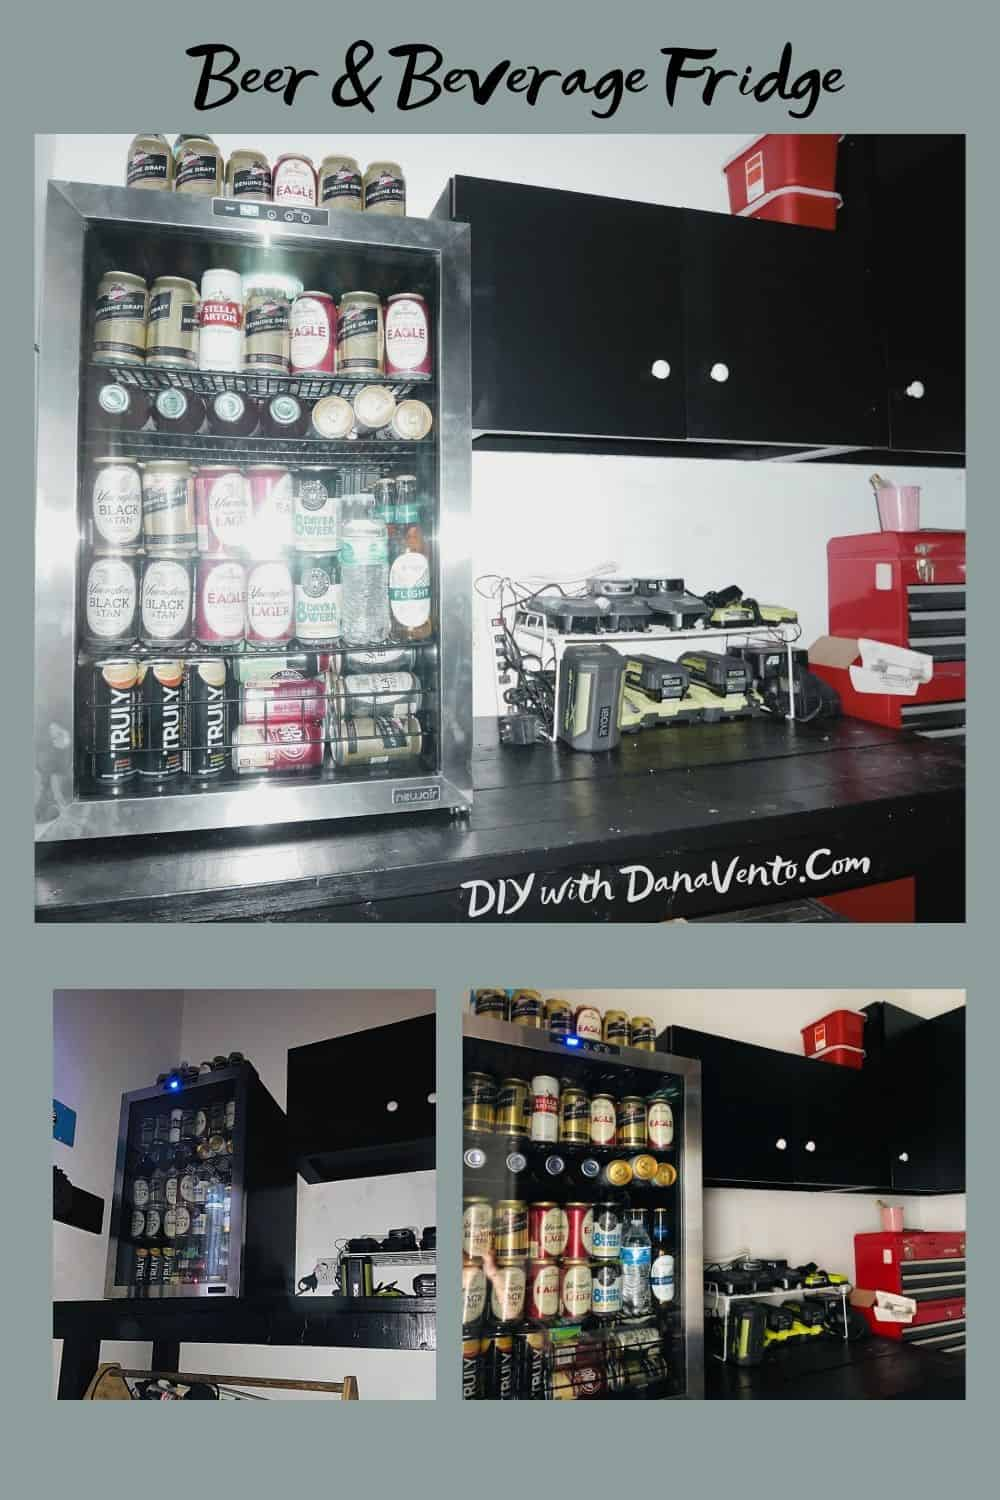 Beer and beverage Fridge on workshop bench loaded